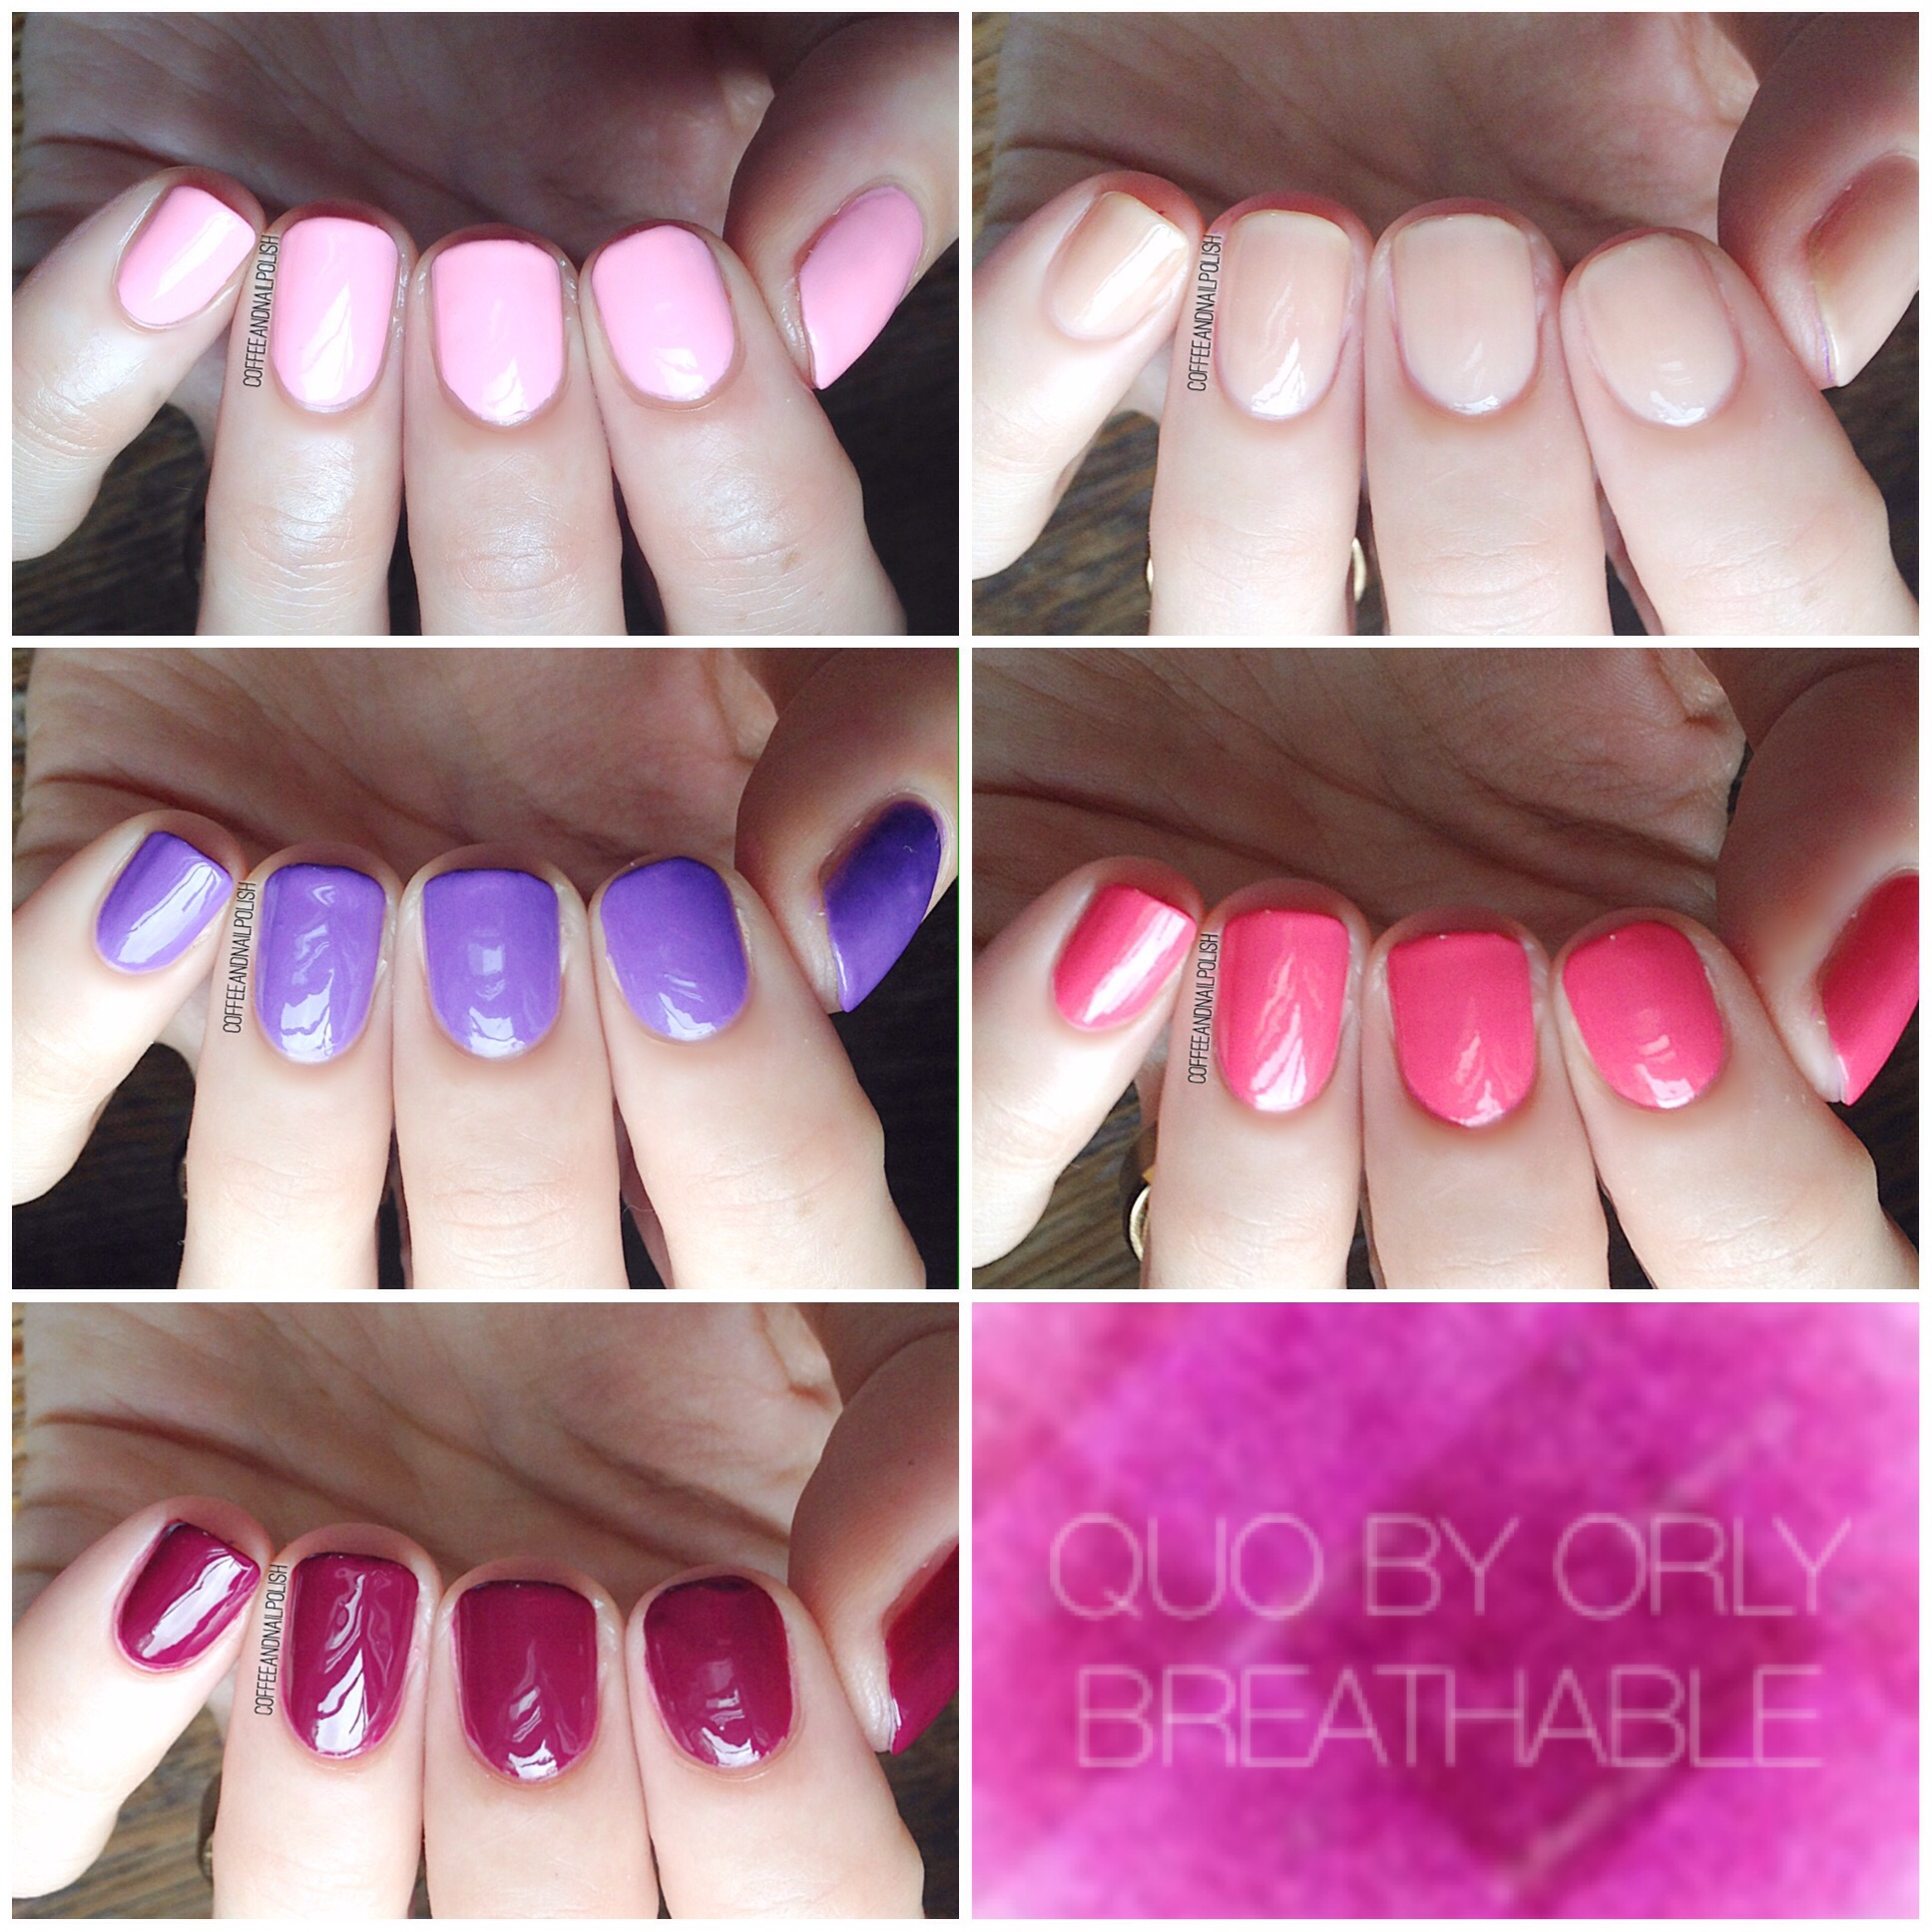 Ill Warn You In Advance This Post Is Very Picture Heavy I Finally Got A Chance To Swatch The 5 QUO By Orly Breathable Polishes Was Kindly Sent For